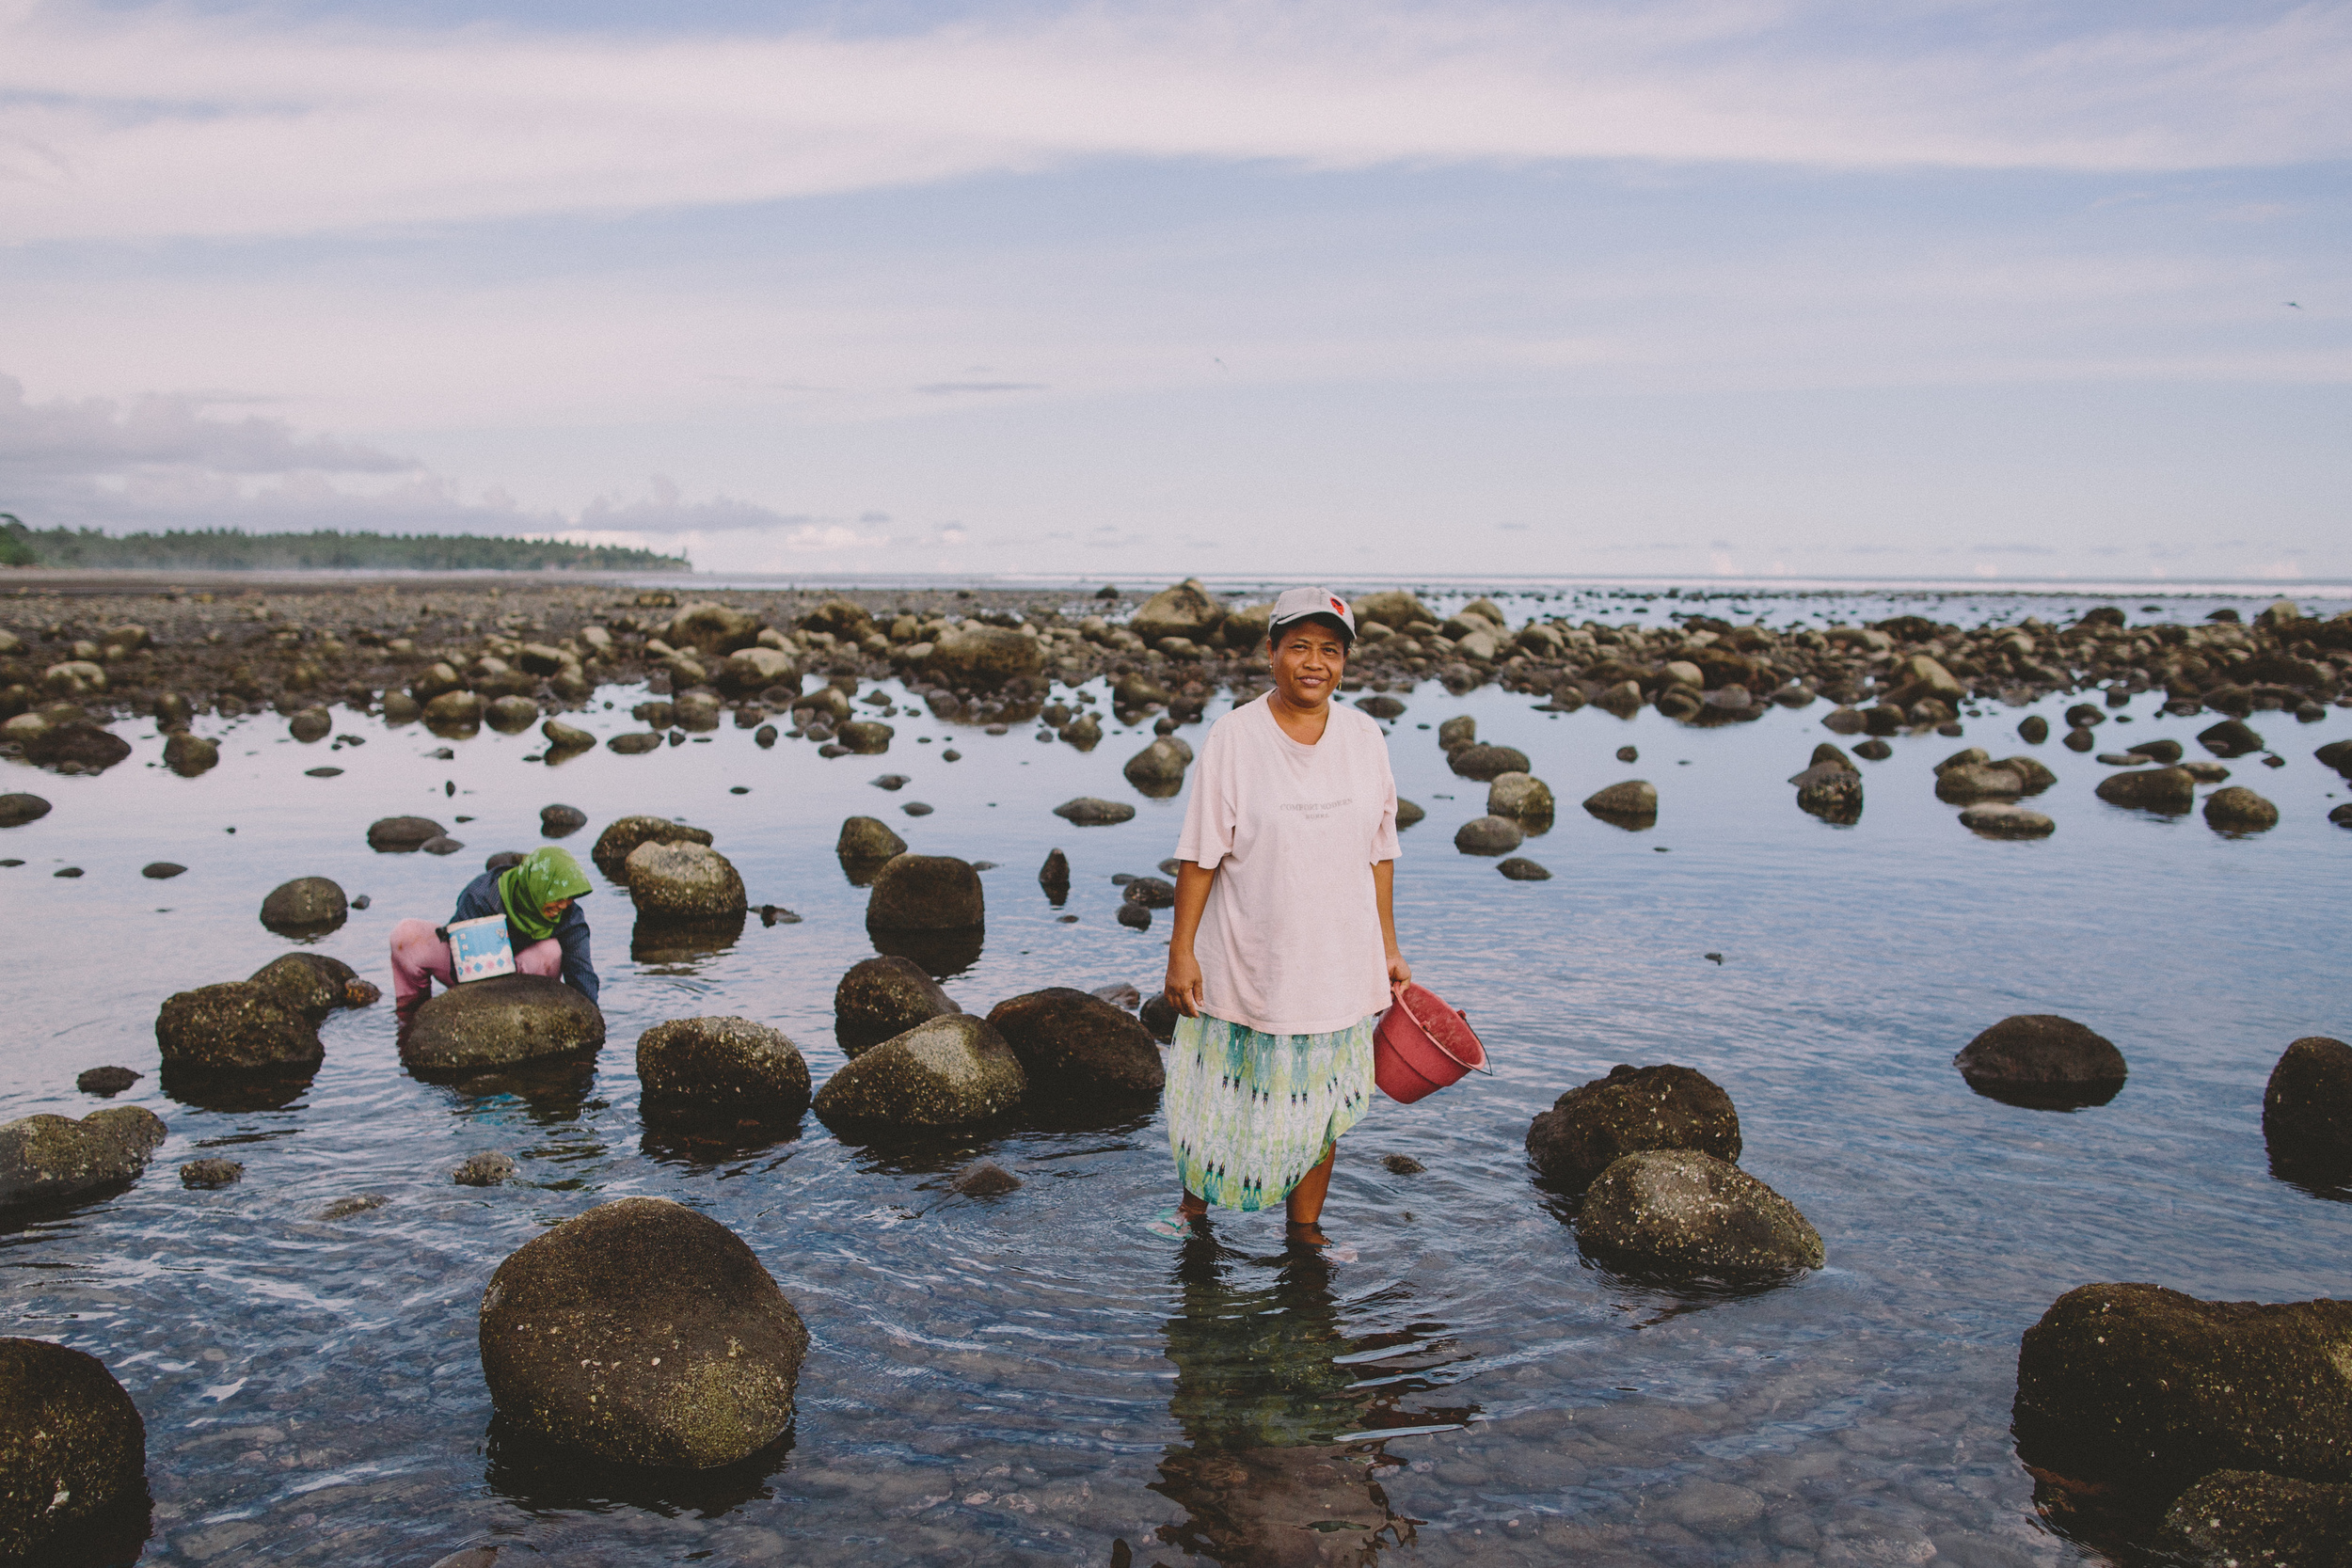 Bali_Indonesia_photo_journalism_shellfish_collecting_global_eyes_media_013.jpg